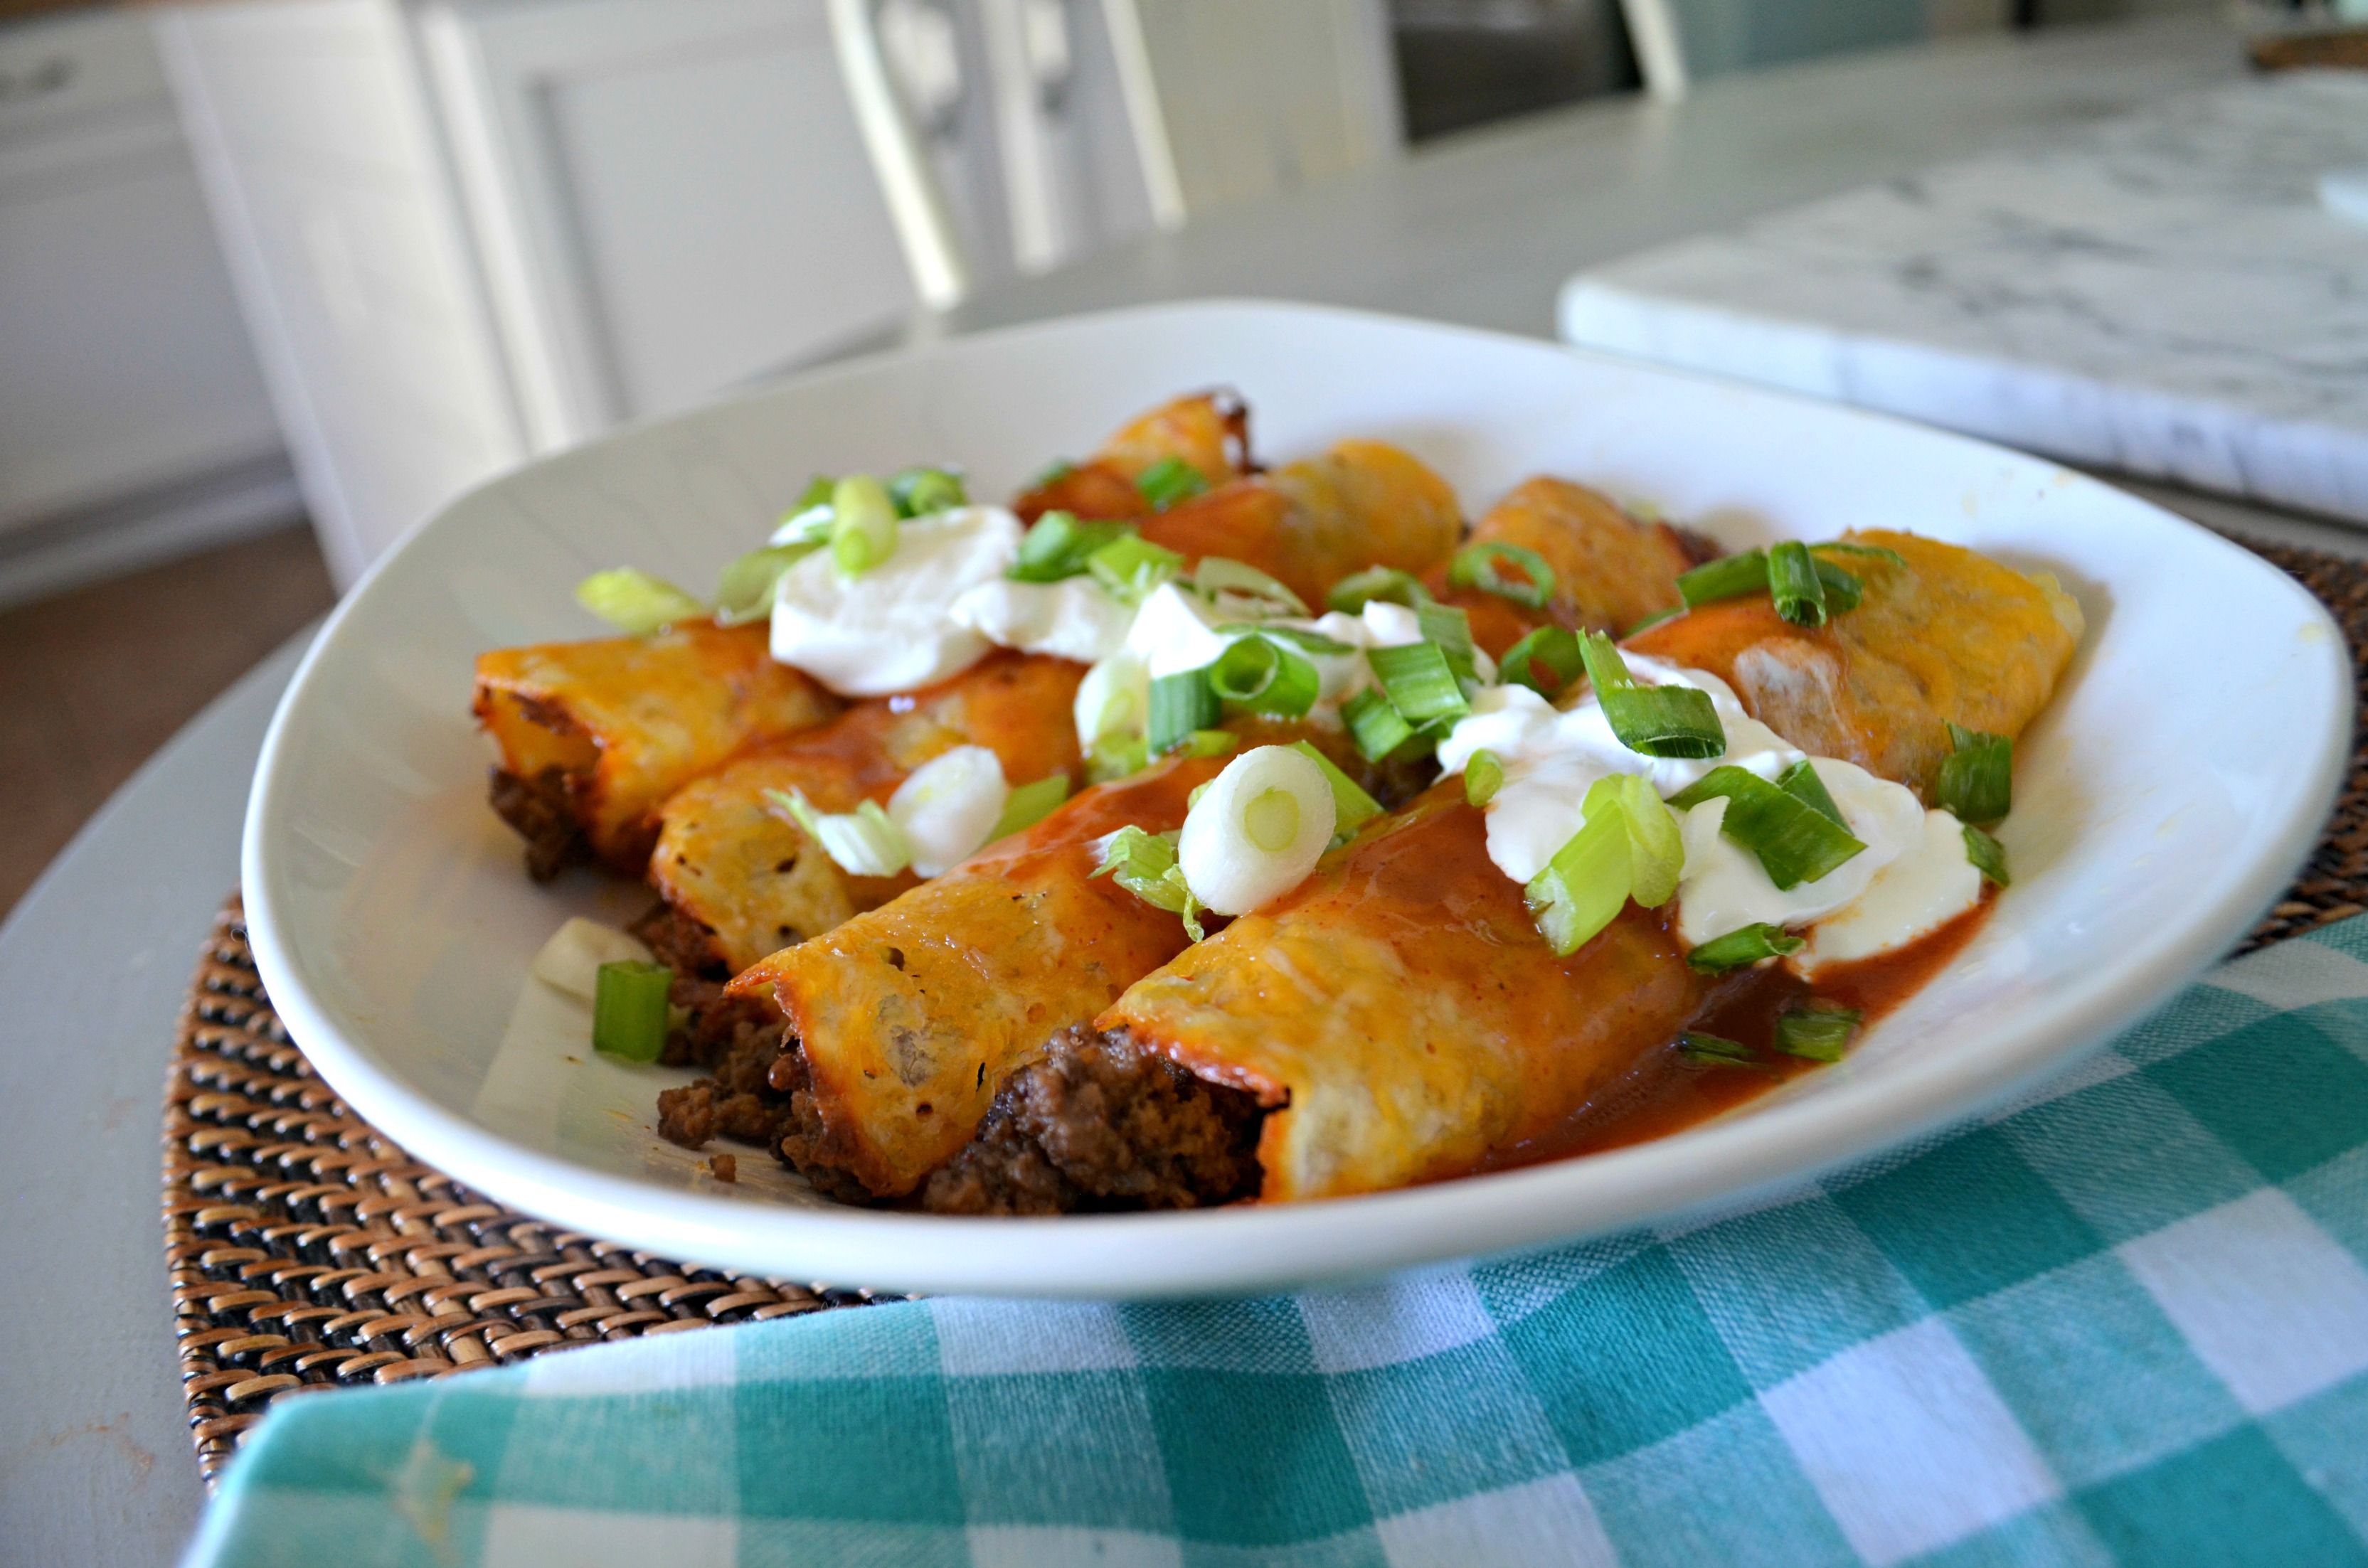 The ground beef keto enchiladas are arranged on a platter with sour cream and chopped green onion